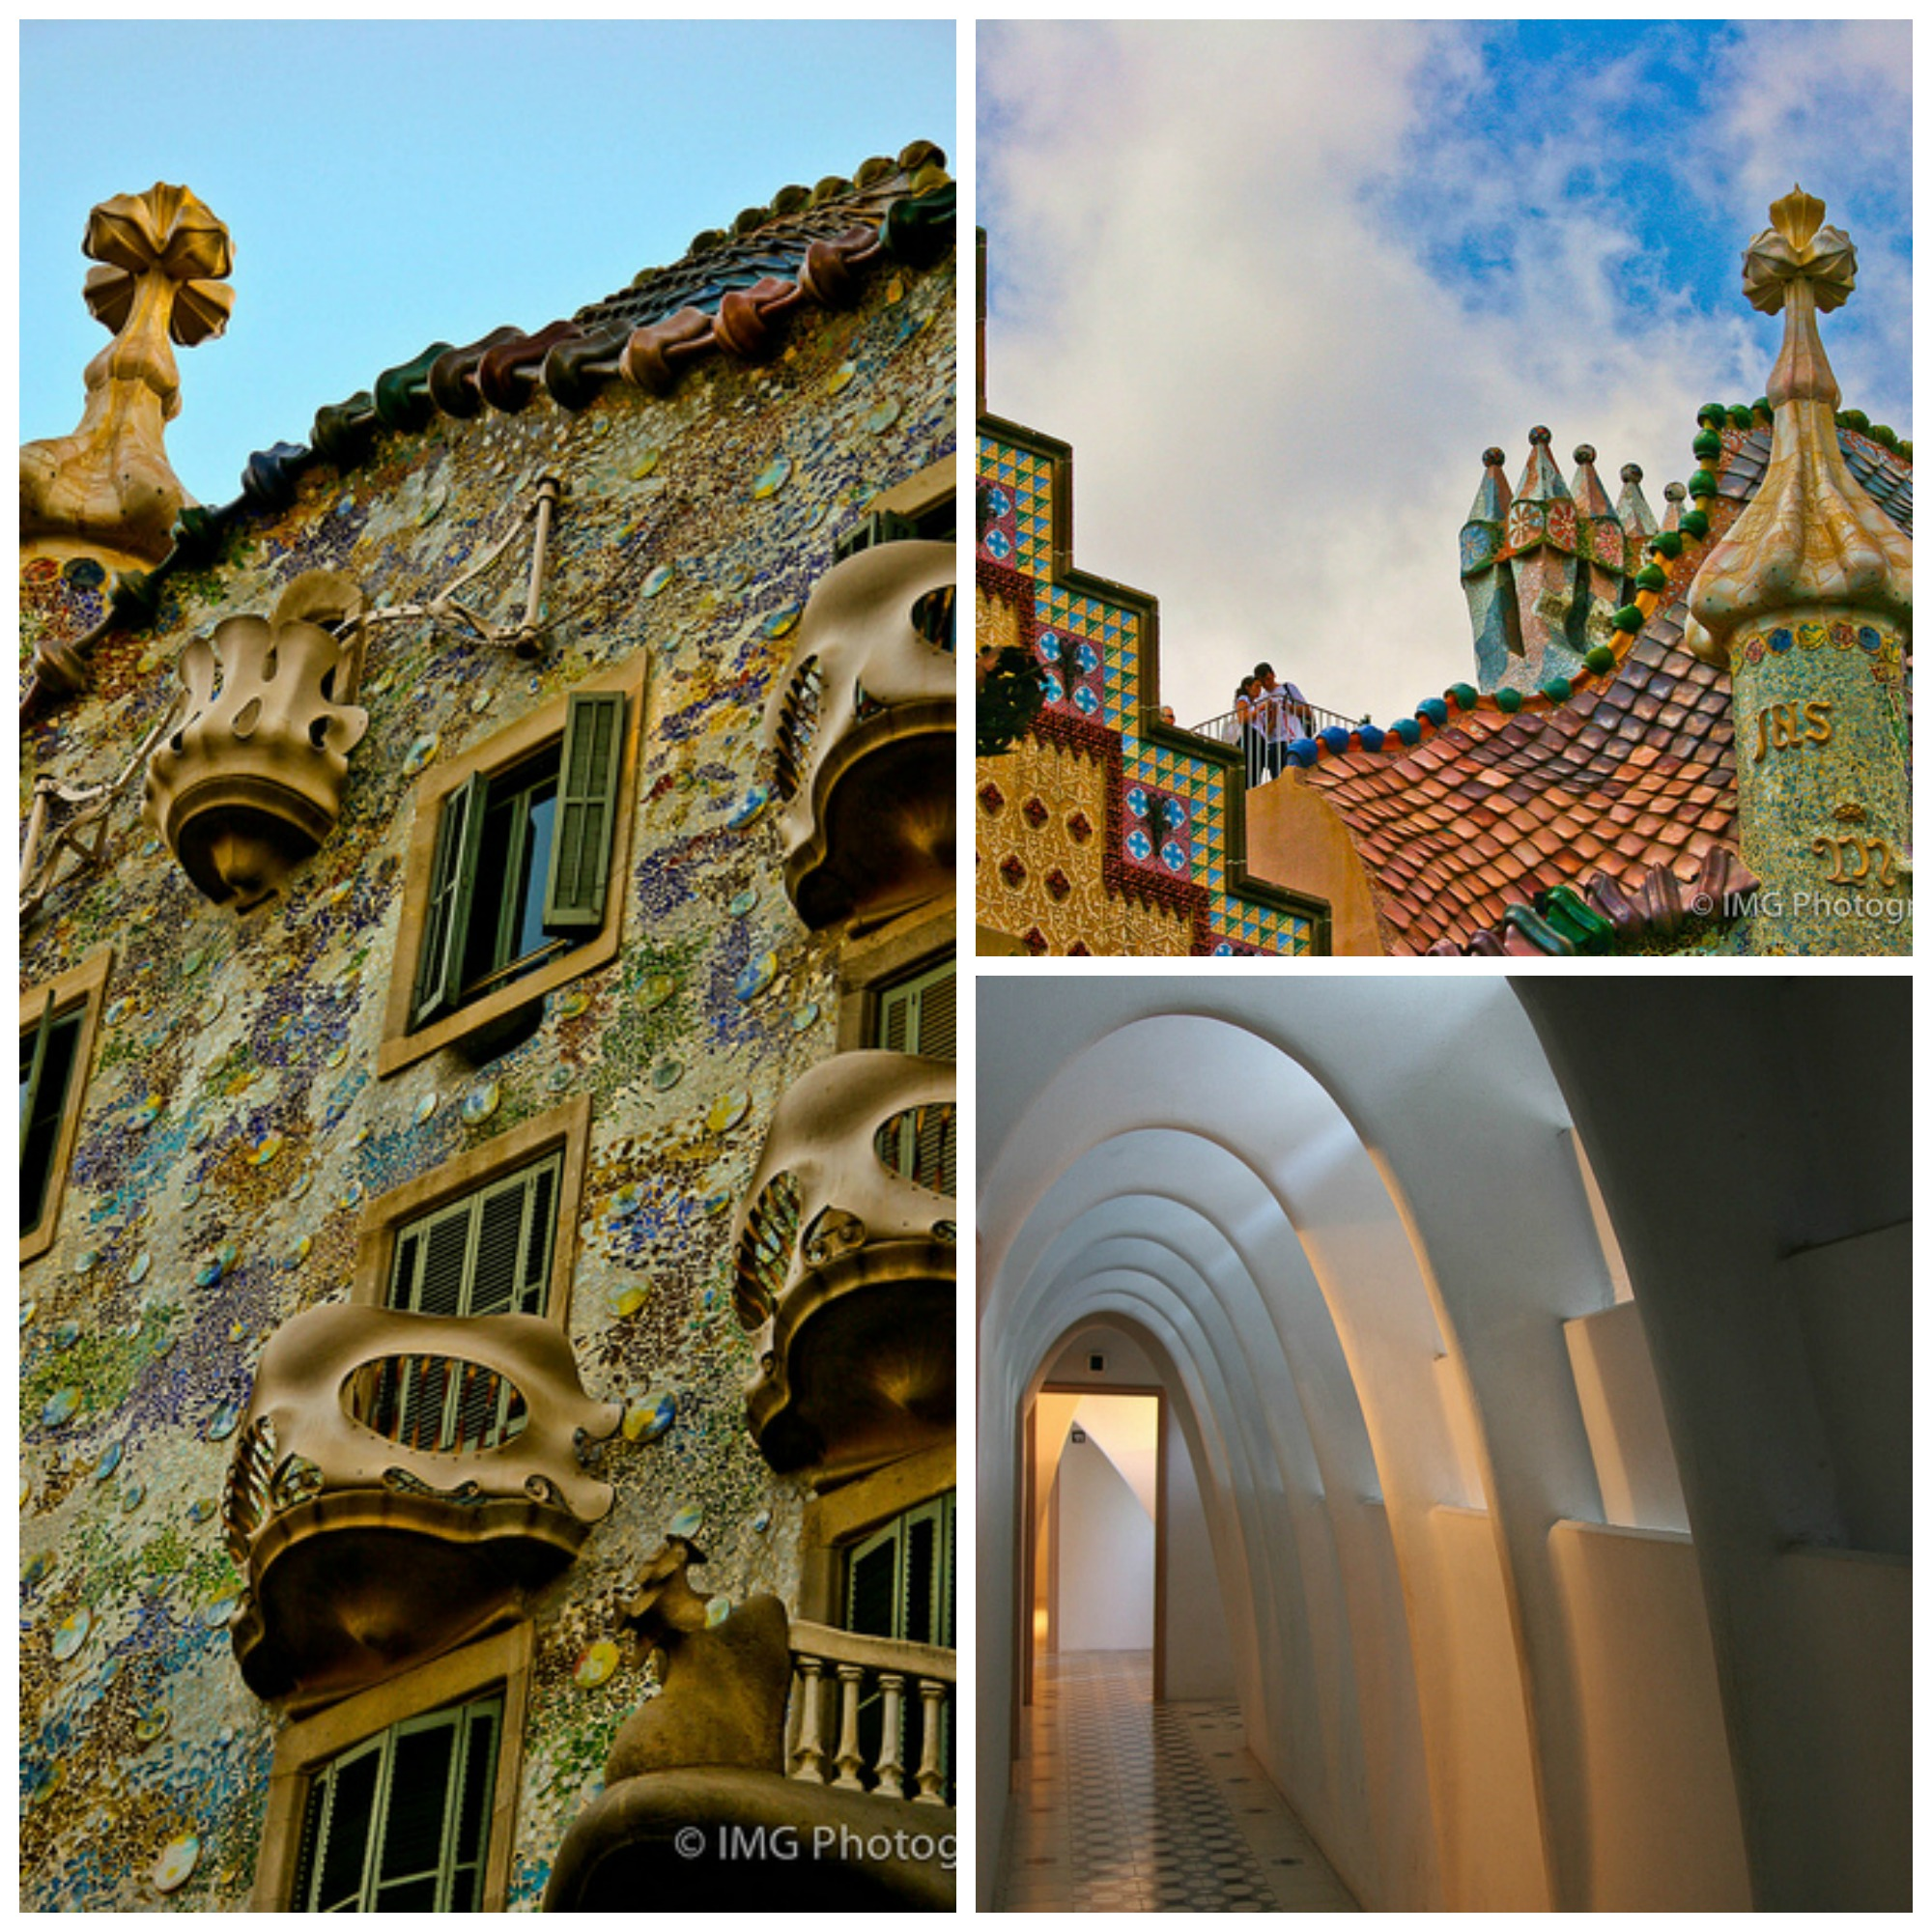 The History Of Casa Batlló In 1 Minute